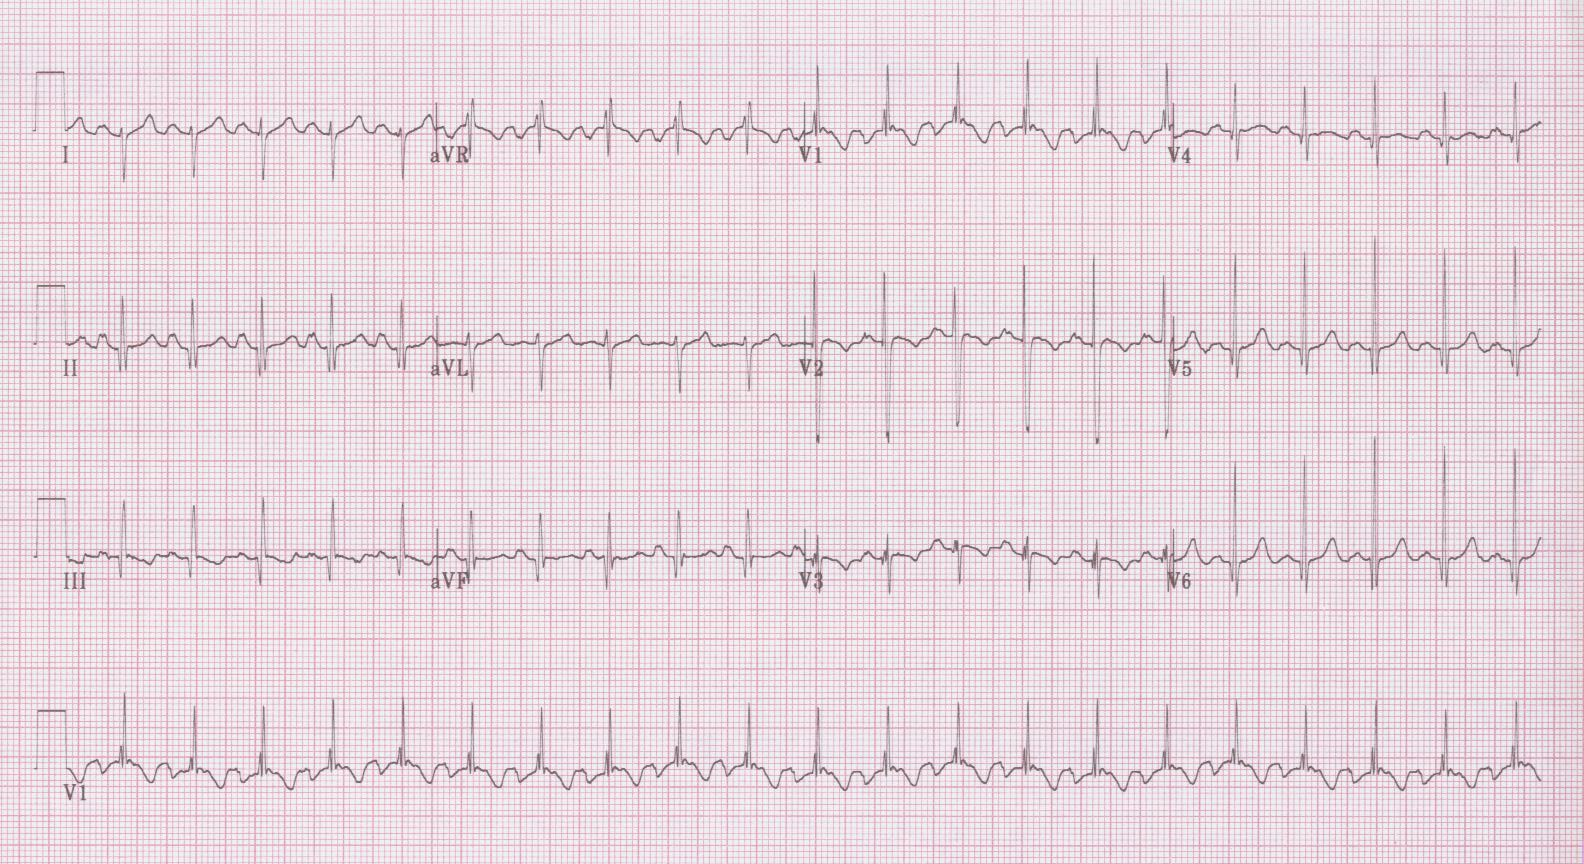 38 - Right ventricular hypertrophy (mitral stenosis)